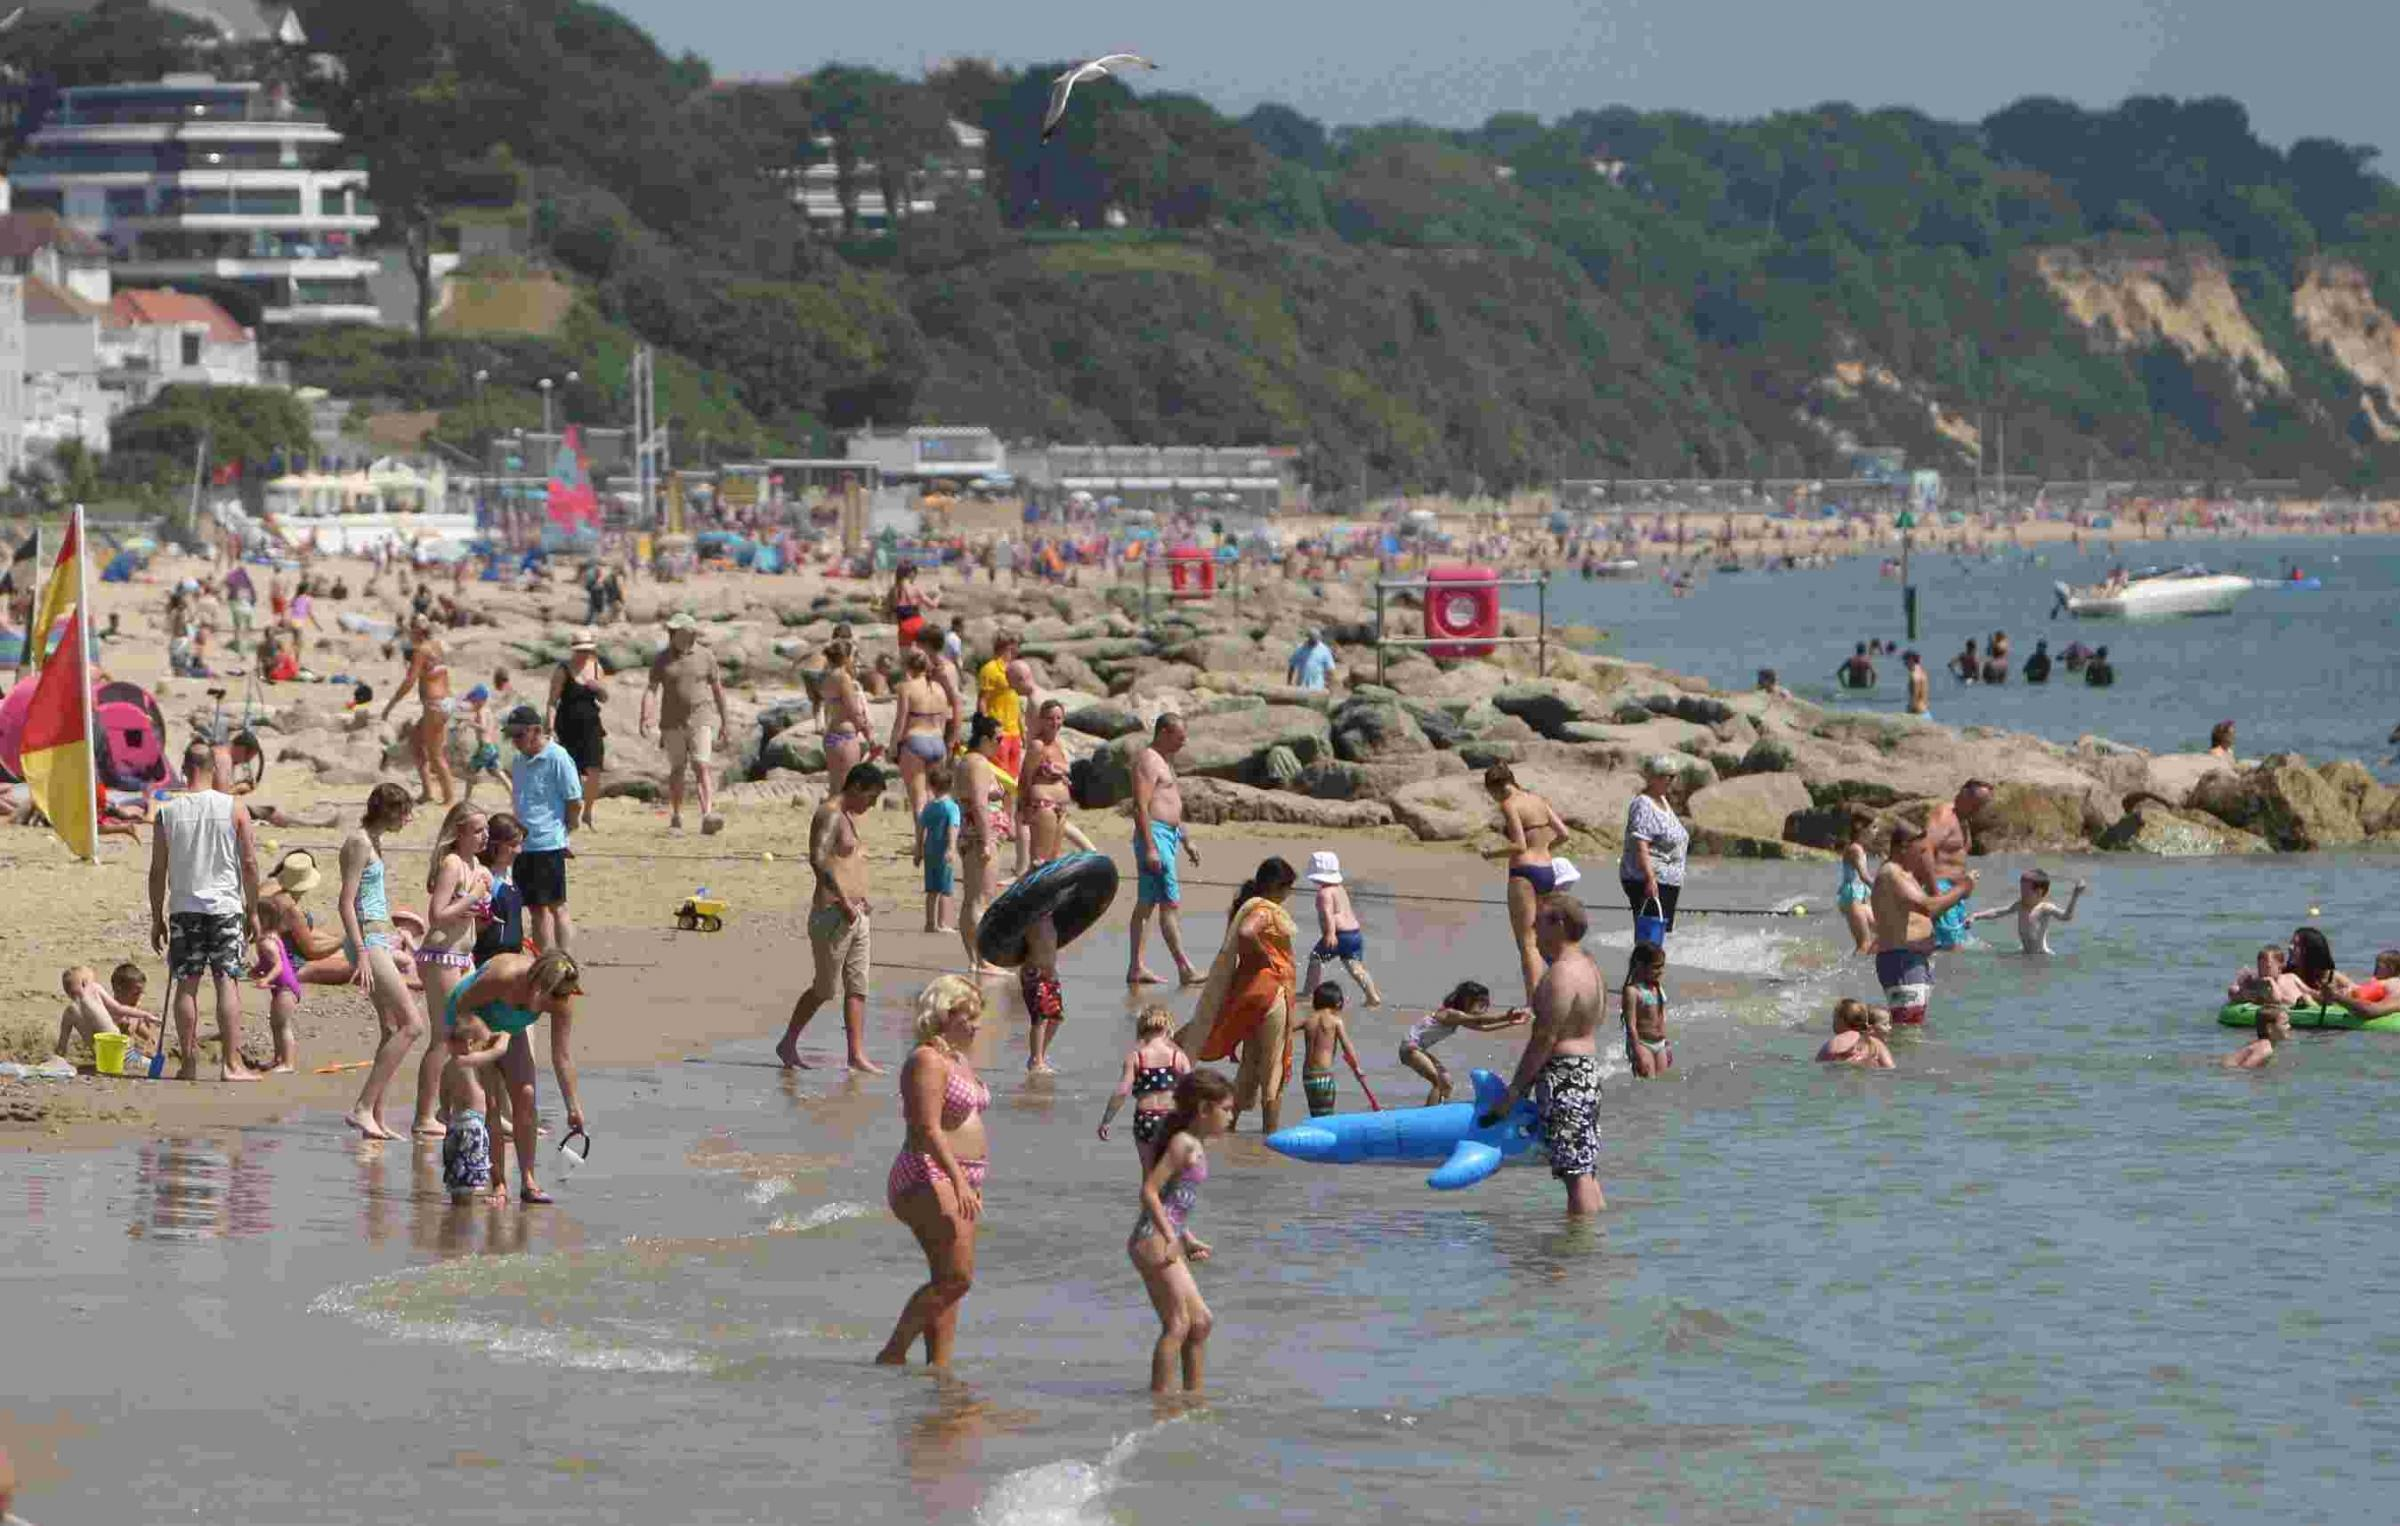 Revealed: the best beaches in the UK according to TripAdvisor (and three of them are in Dorset)